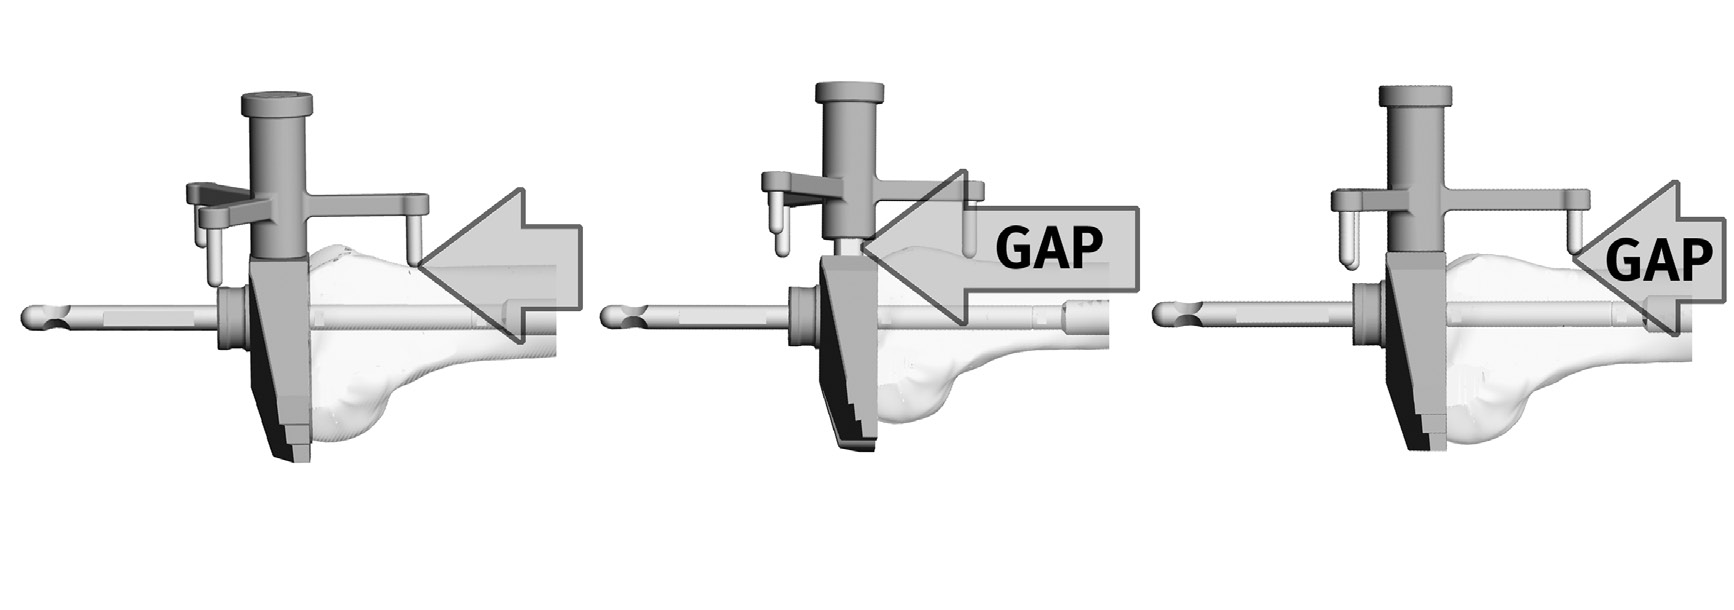 Zimmer MOST Options System Surgical Technique 29 Femoral Sizing a Guide b c Trial Stem Adapter Correct Sizing Under Sized Over Sized Fig.